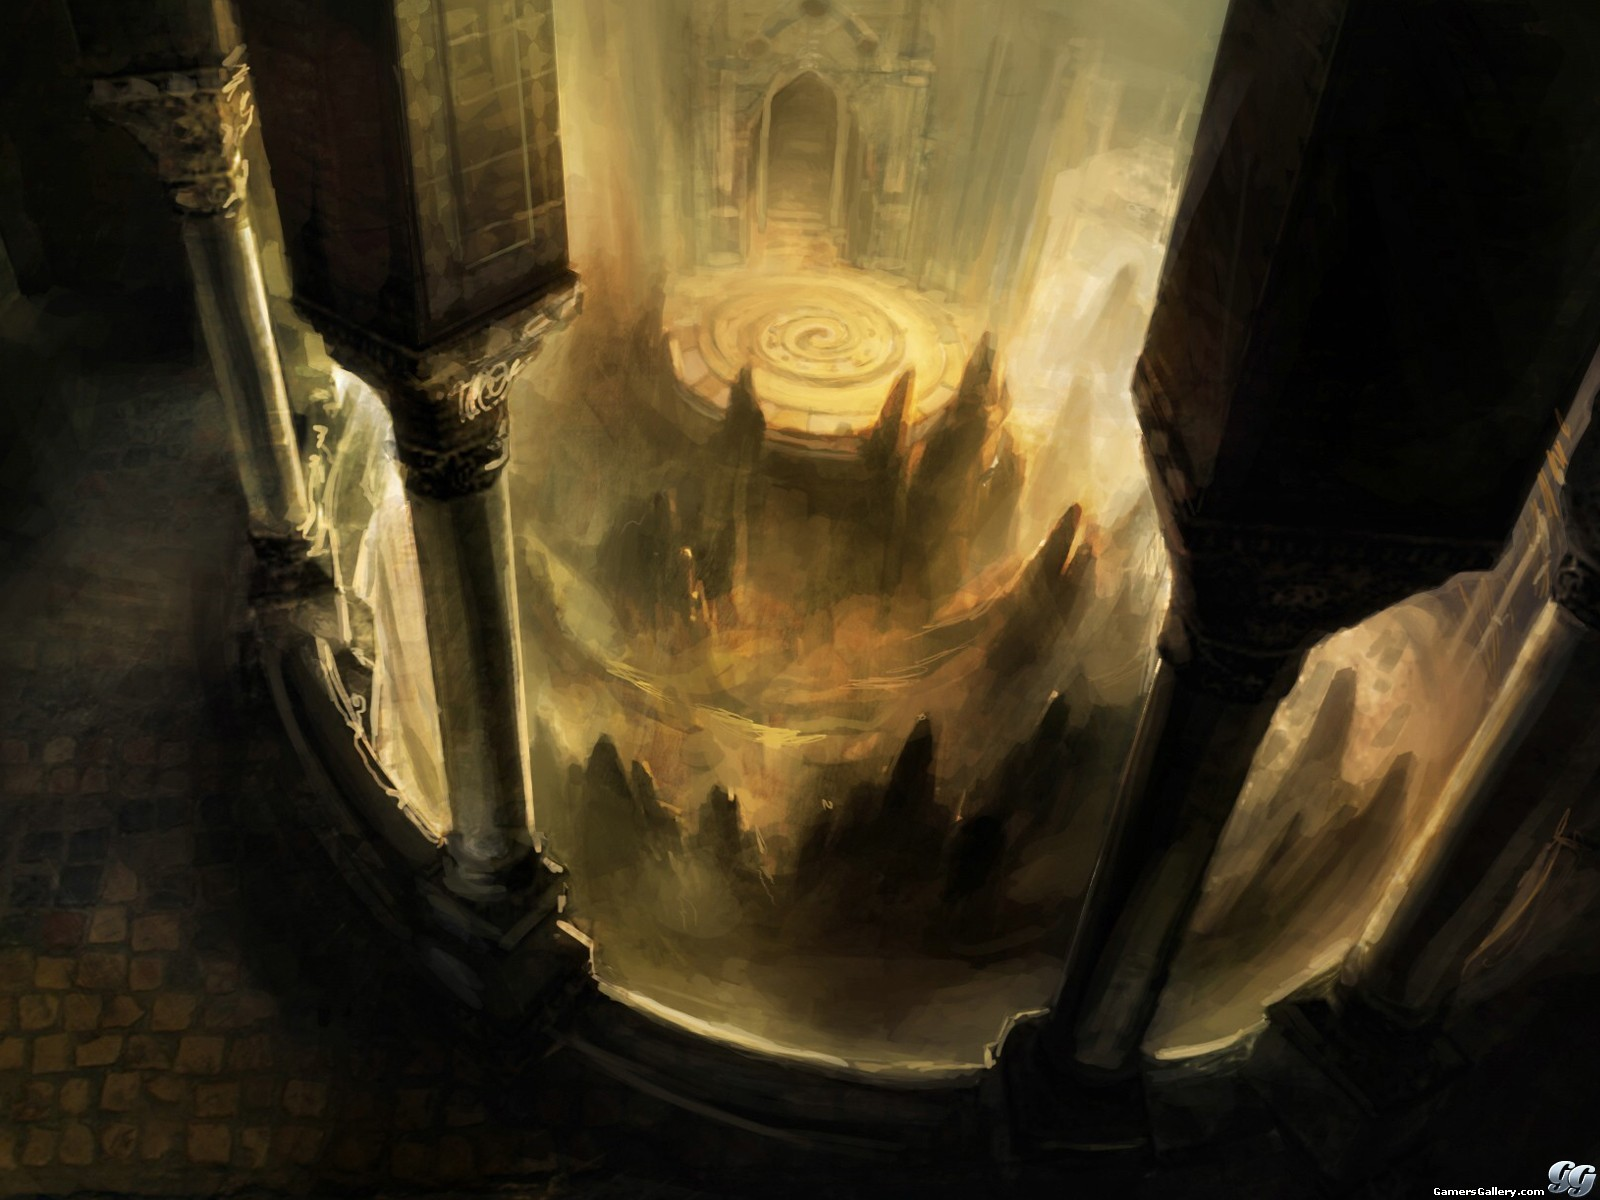 04_1600.jpg - Prince of Persia: The Two Thrones